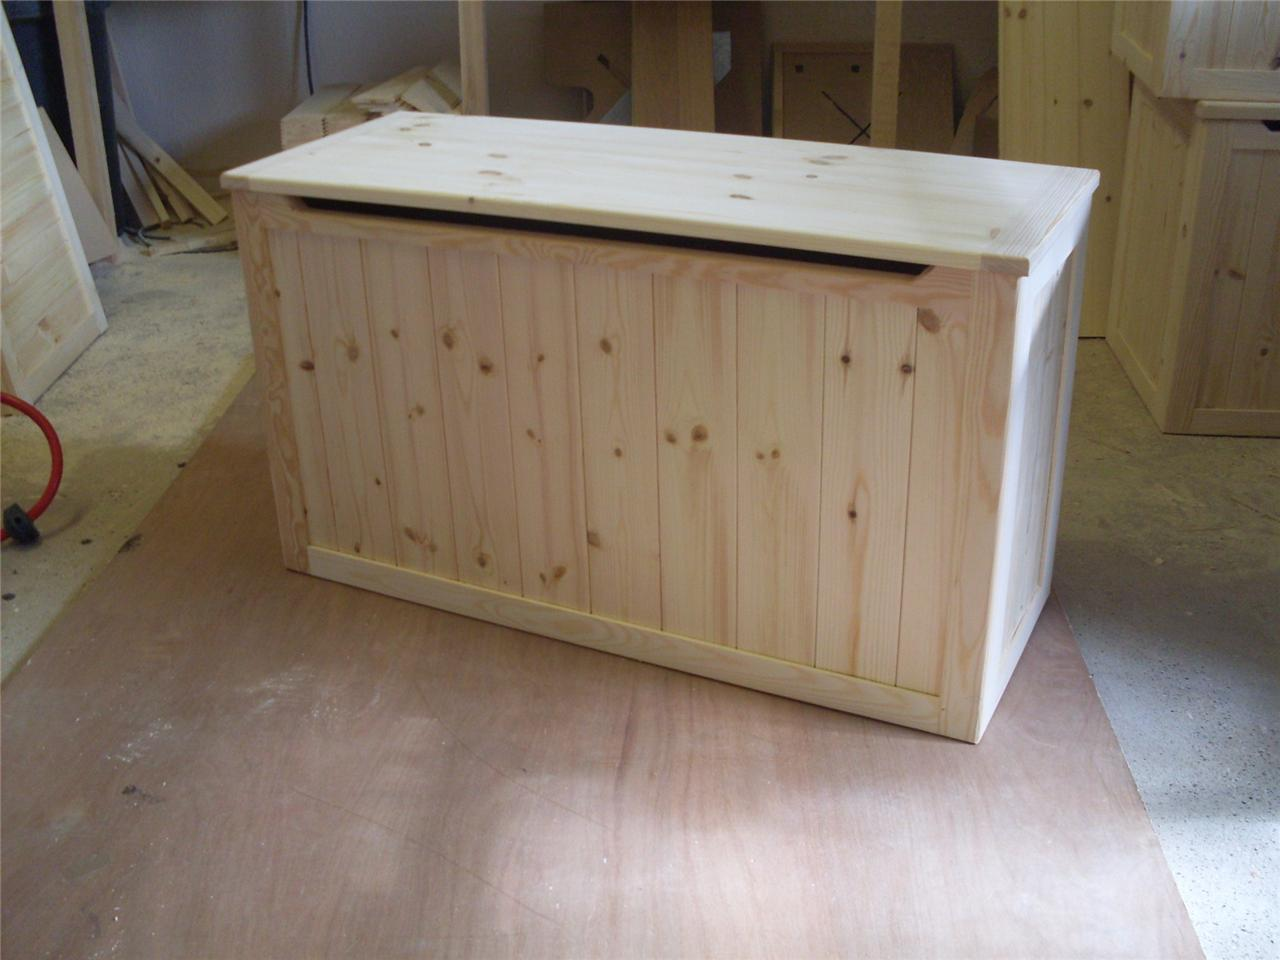 BEAUTIFUL HAND CRAFTED PINE WOODEN TOY BOX, BLANKET BOX, CHEST SEAT BOX | eBay